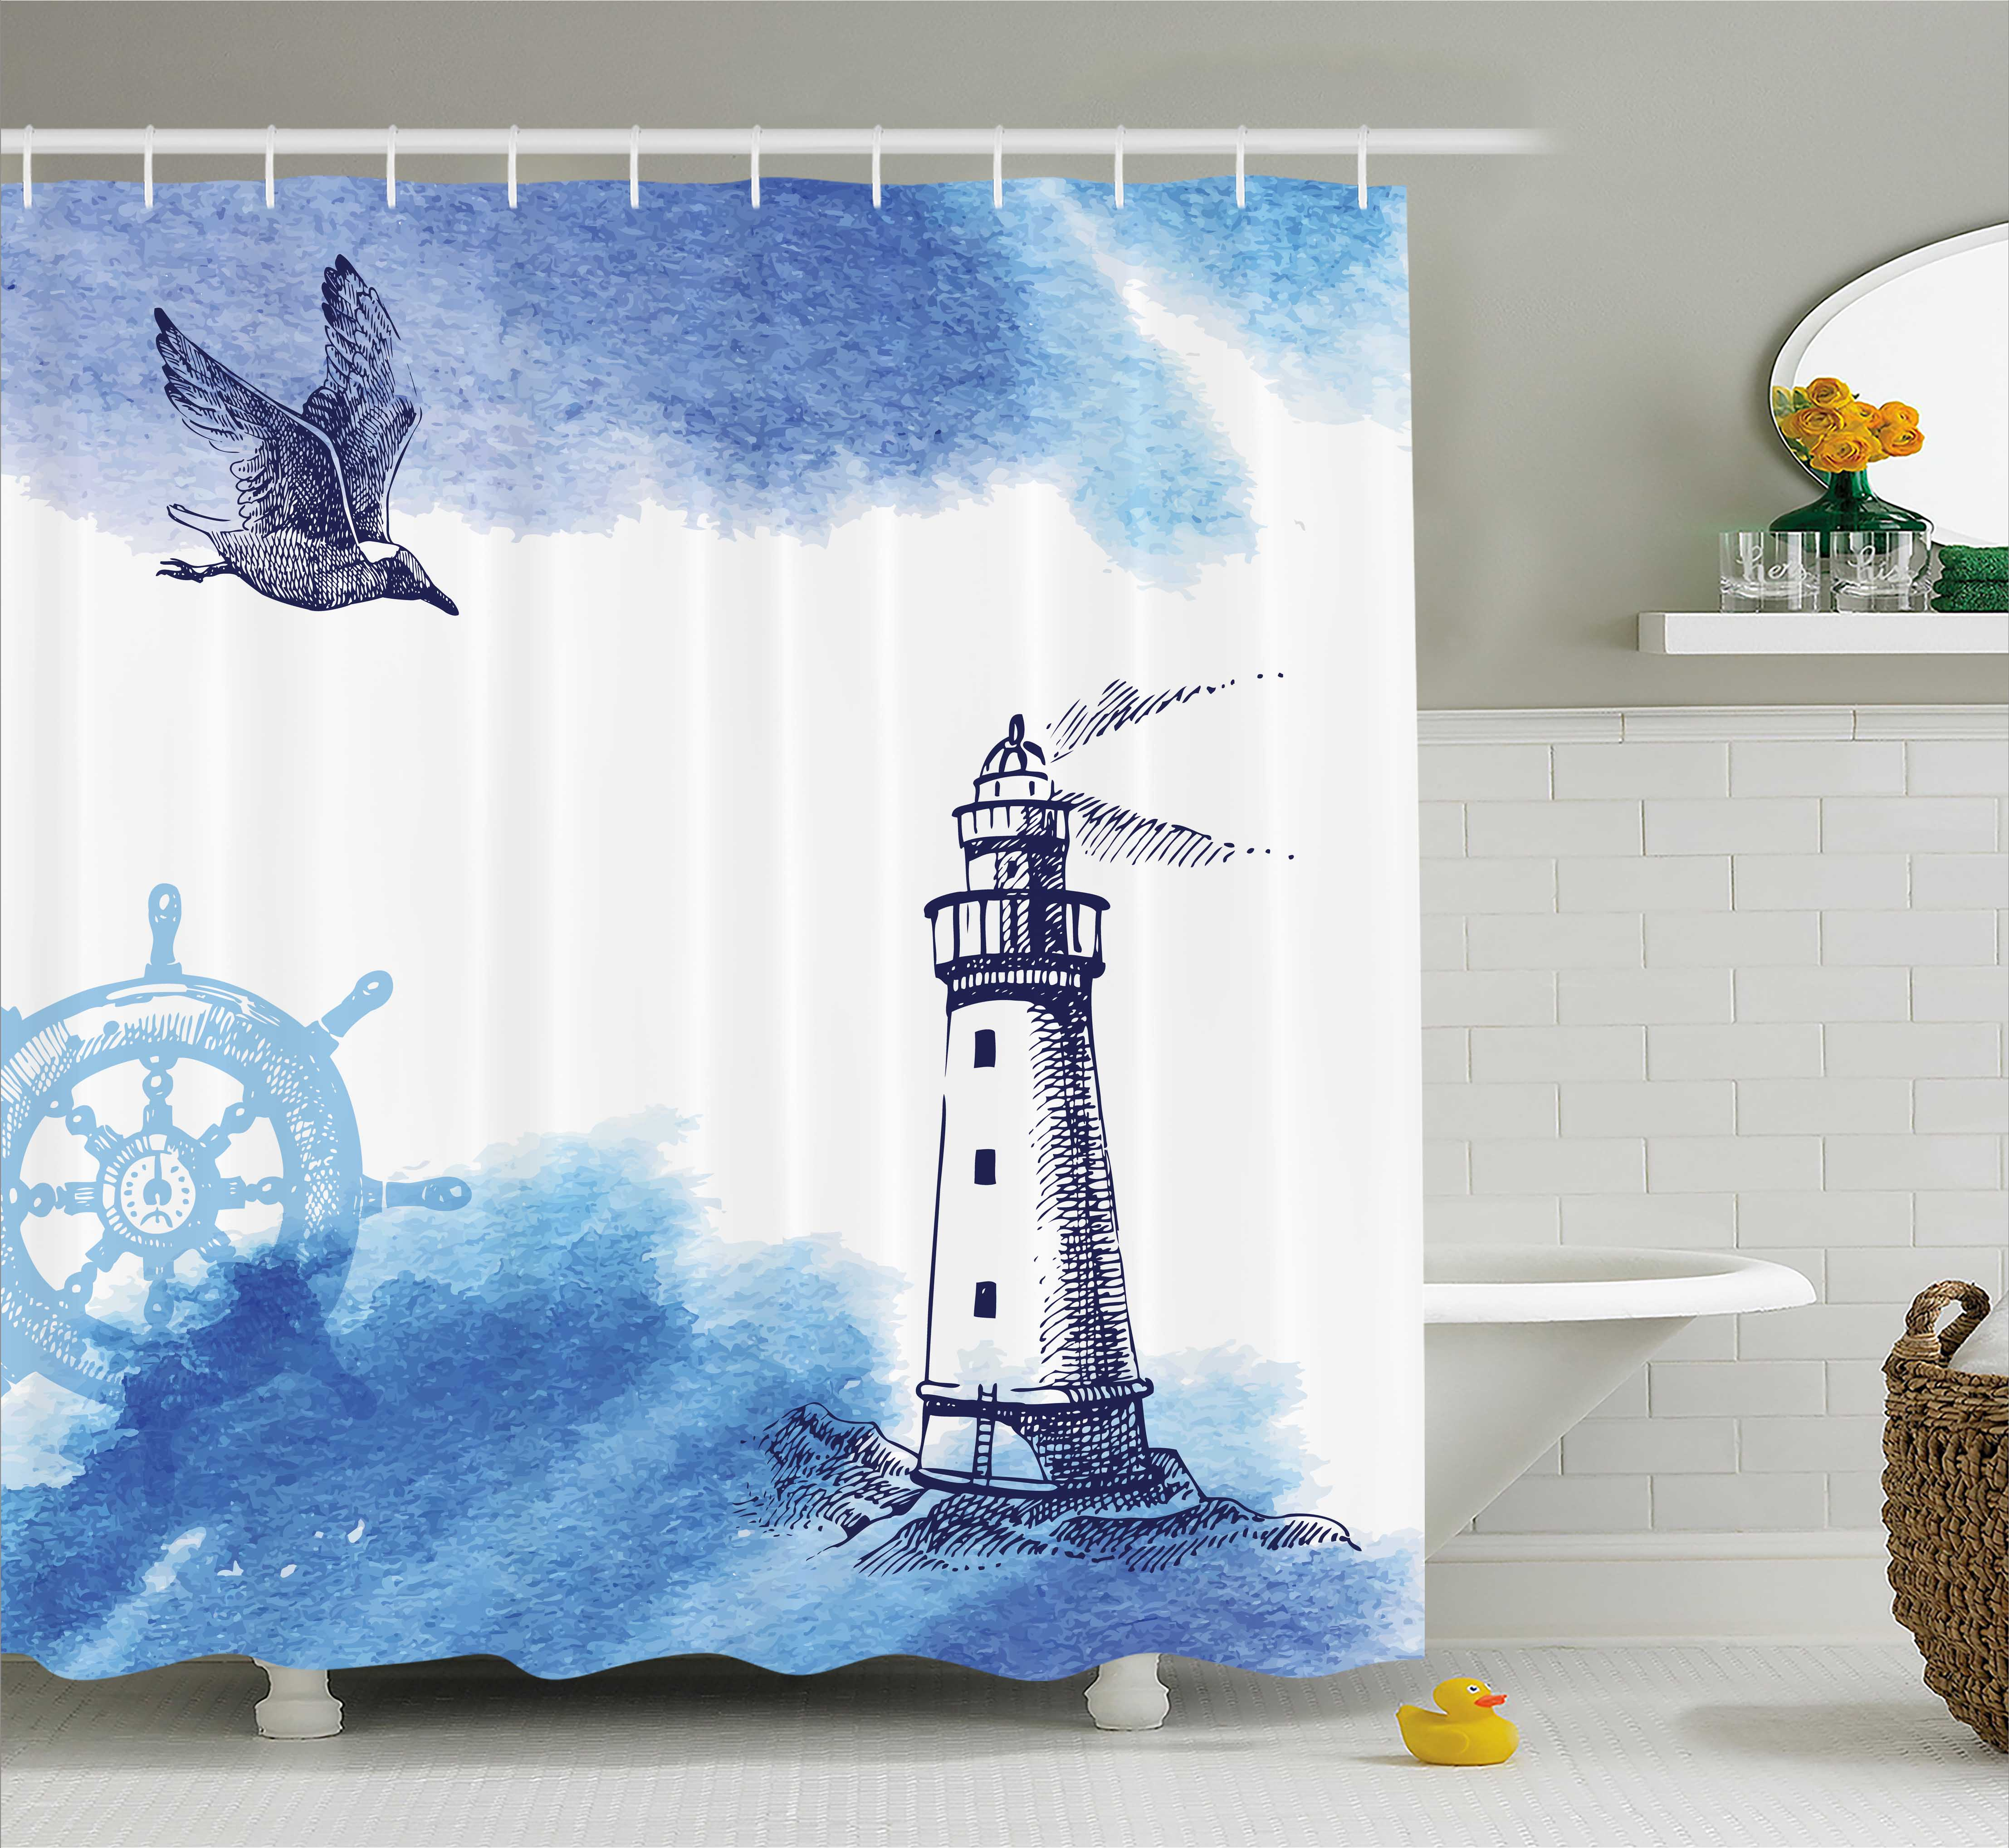 Farm House Decor Shower Curtain, Nostalgic Watercolors with Gull Ancient Anchor Lighthouse Nautical Theme , Fabric Bathroom Set with Hooks, 69W X 84L Inches Extra Long, Blue White, by Ambesonne